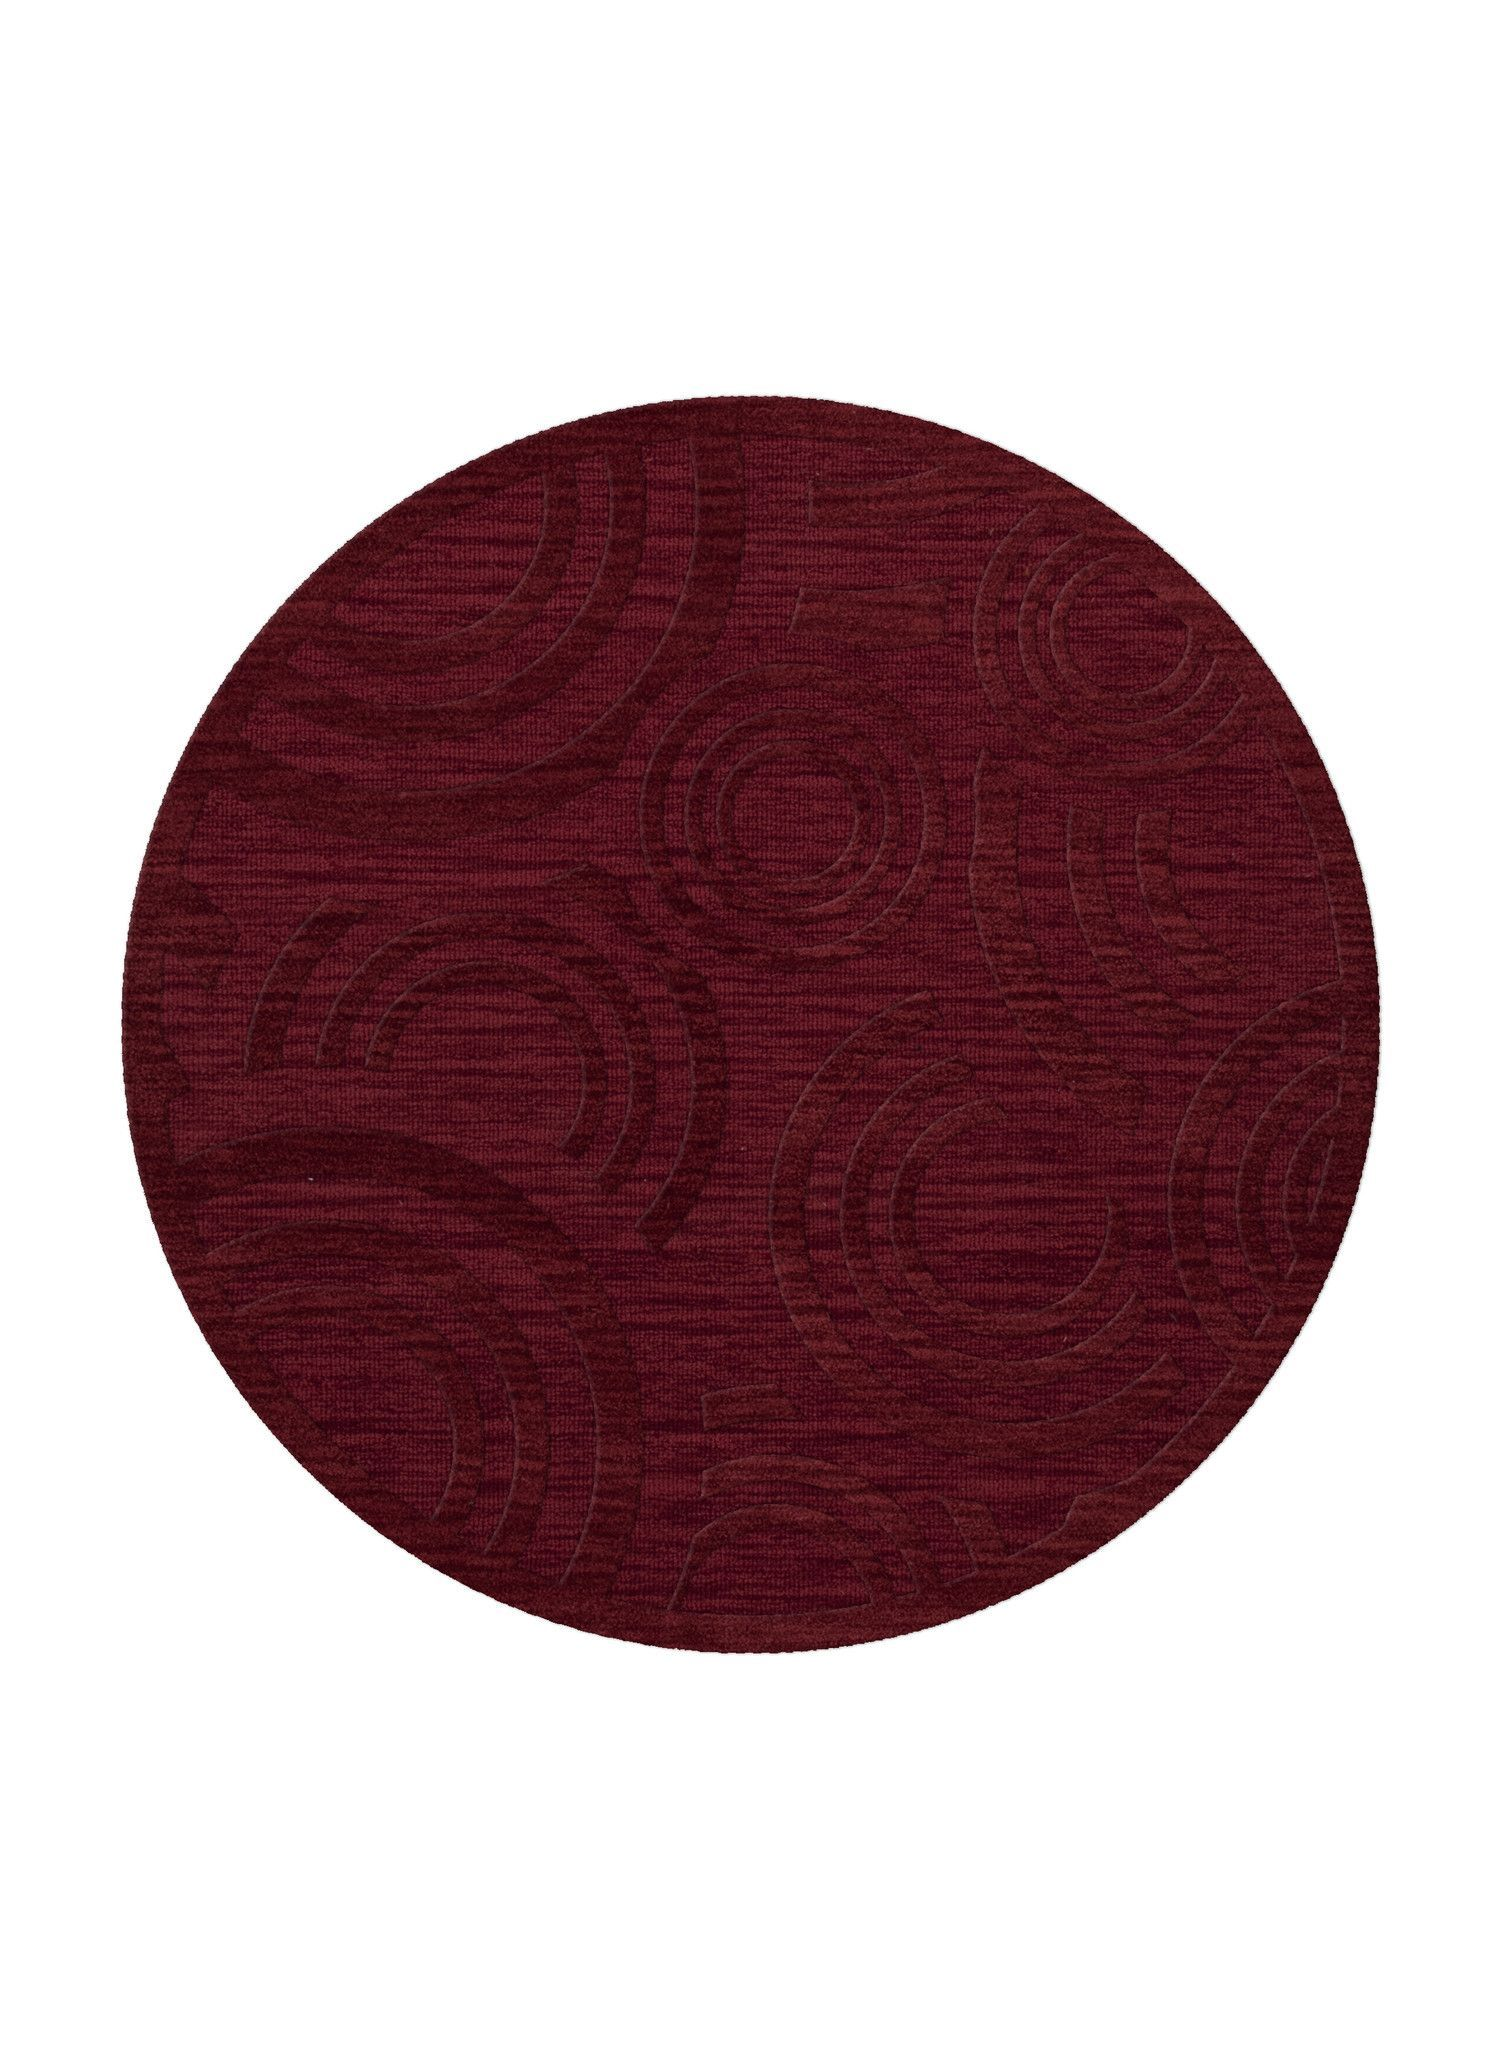 Dalyn Dover Rich Red Dv3 Area Rug